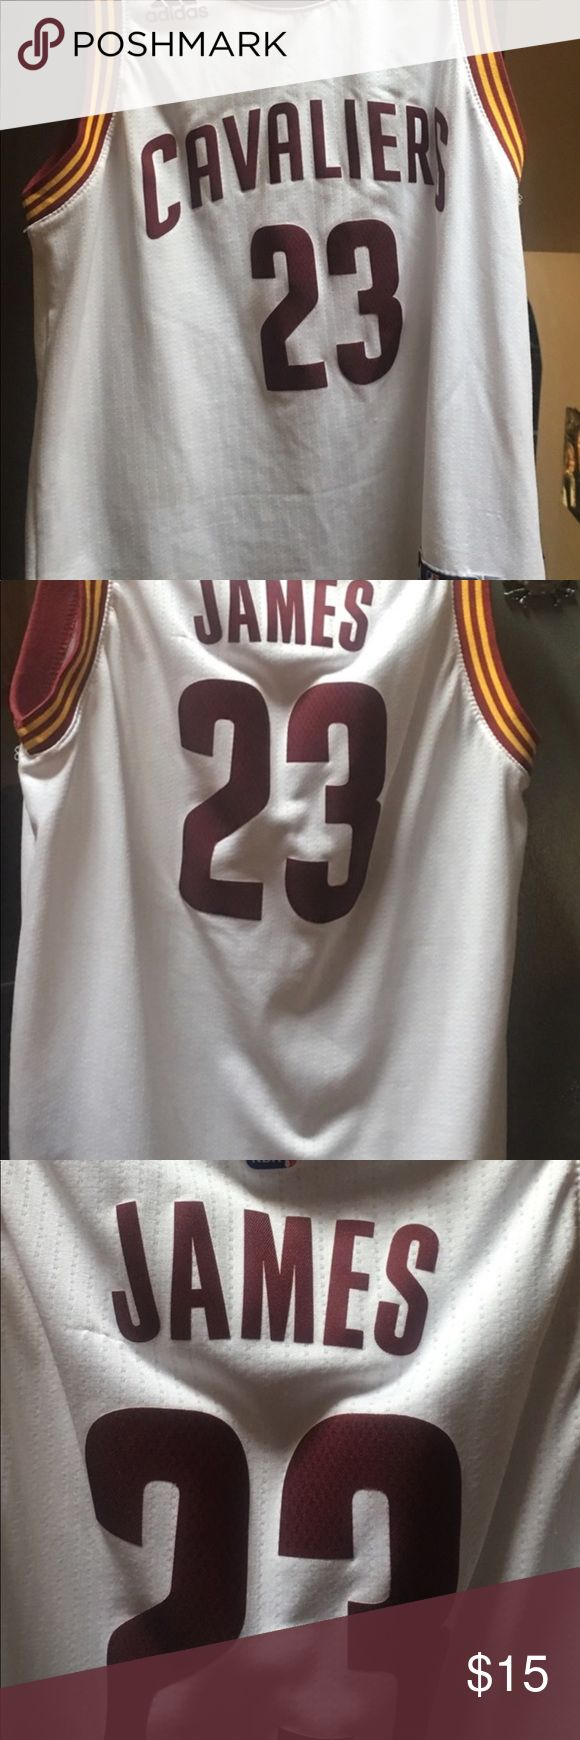 LeBron James jersey Super cute Lebron James 23 jersey. My son never wore. There is a small snag on the back. (See photo). White with maroon lettering and trim.  Size boys medium 10-12 adidas Shirts & Tops